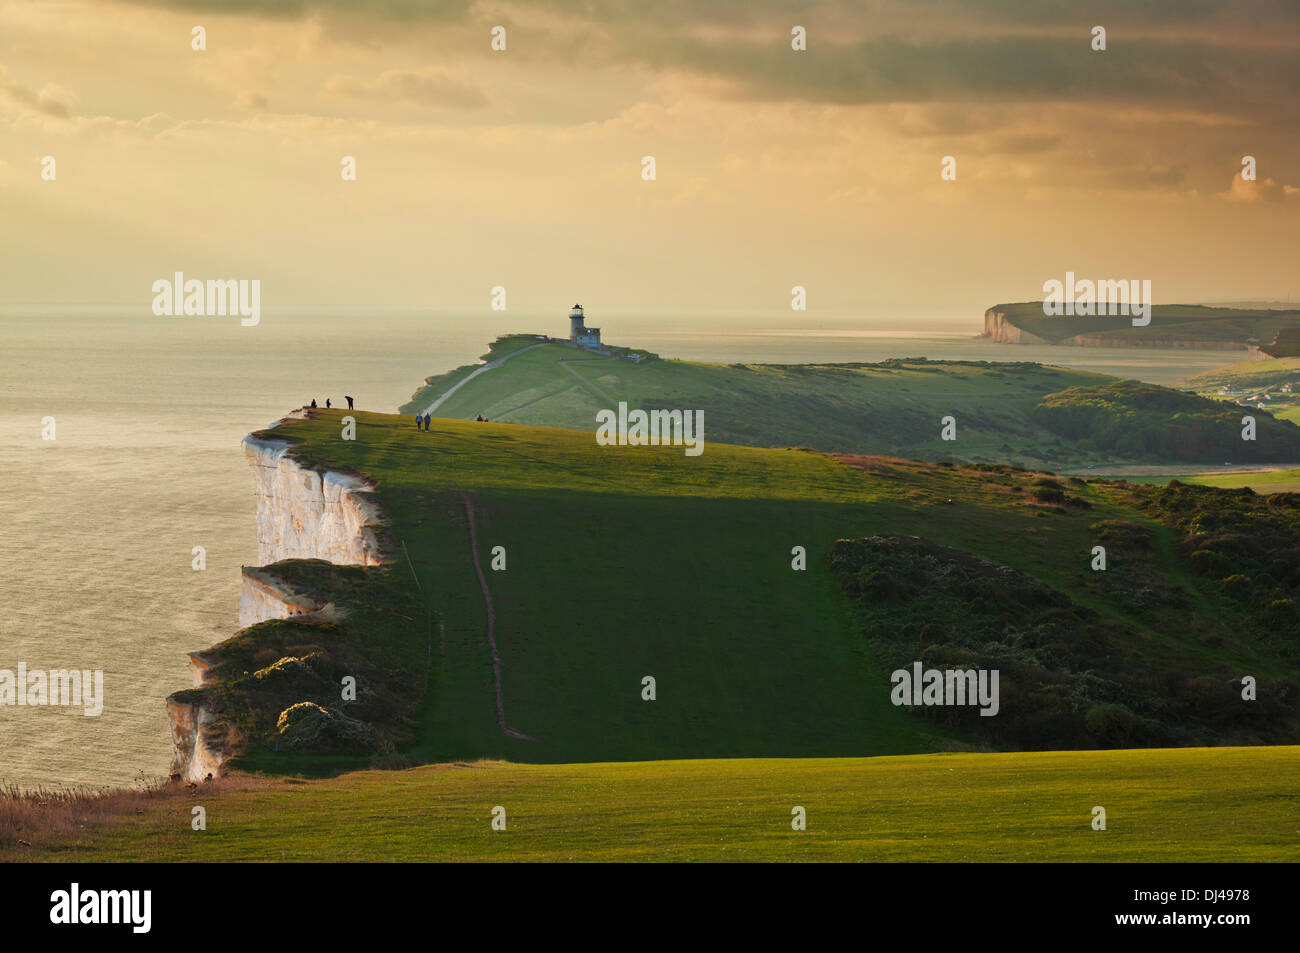 Sunset on the South Downs Way at beachy head South Downs National Park, East Sussex, England, UK, GB, EU, Europe - Stock Image